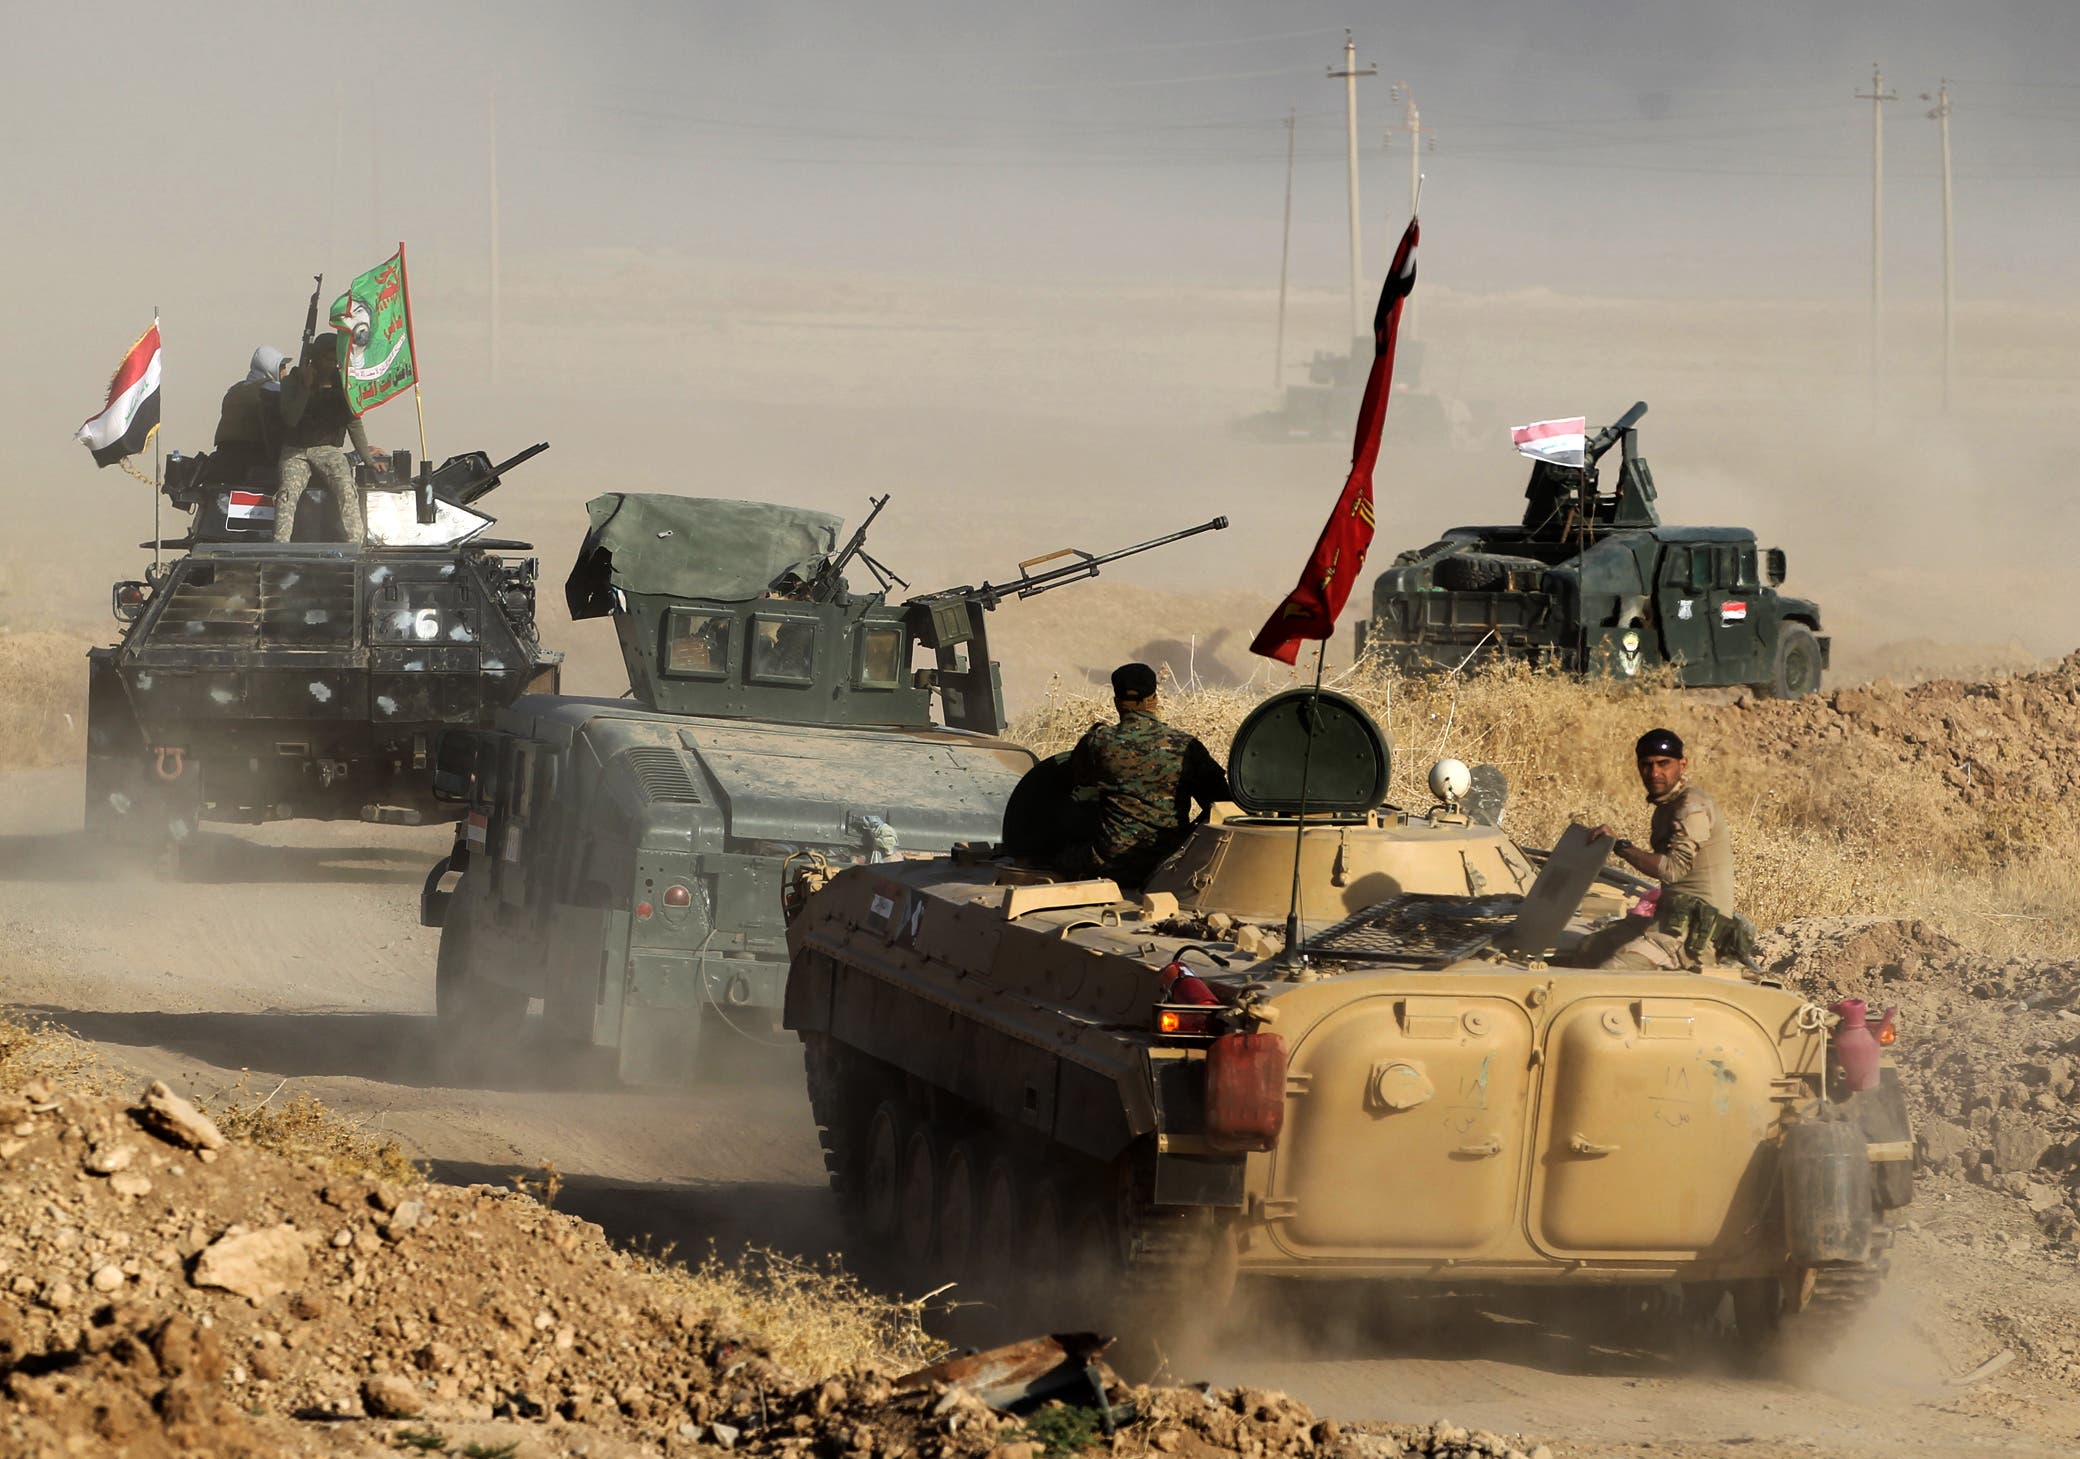 Iraqi forces deploy in the area of al-Shourah, some 45 km south of Mosul, as they advance towards the city to retake it from ISIS extremists, on October 17, 2016.  (AFP)